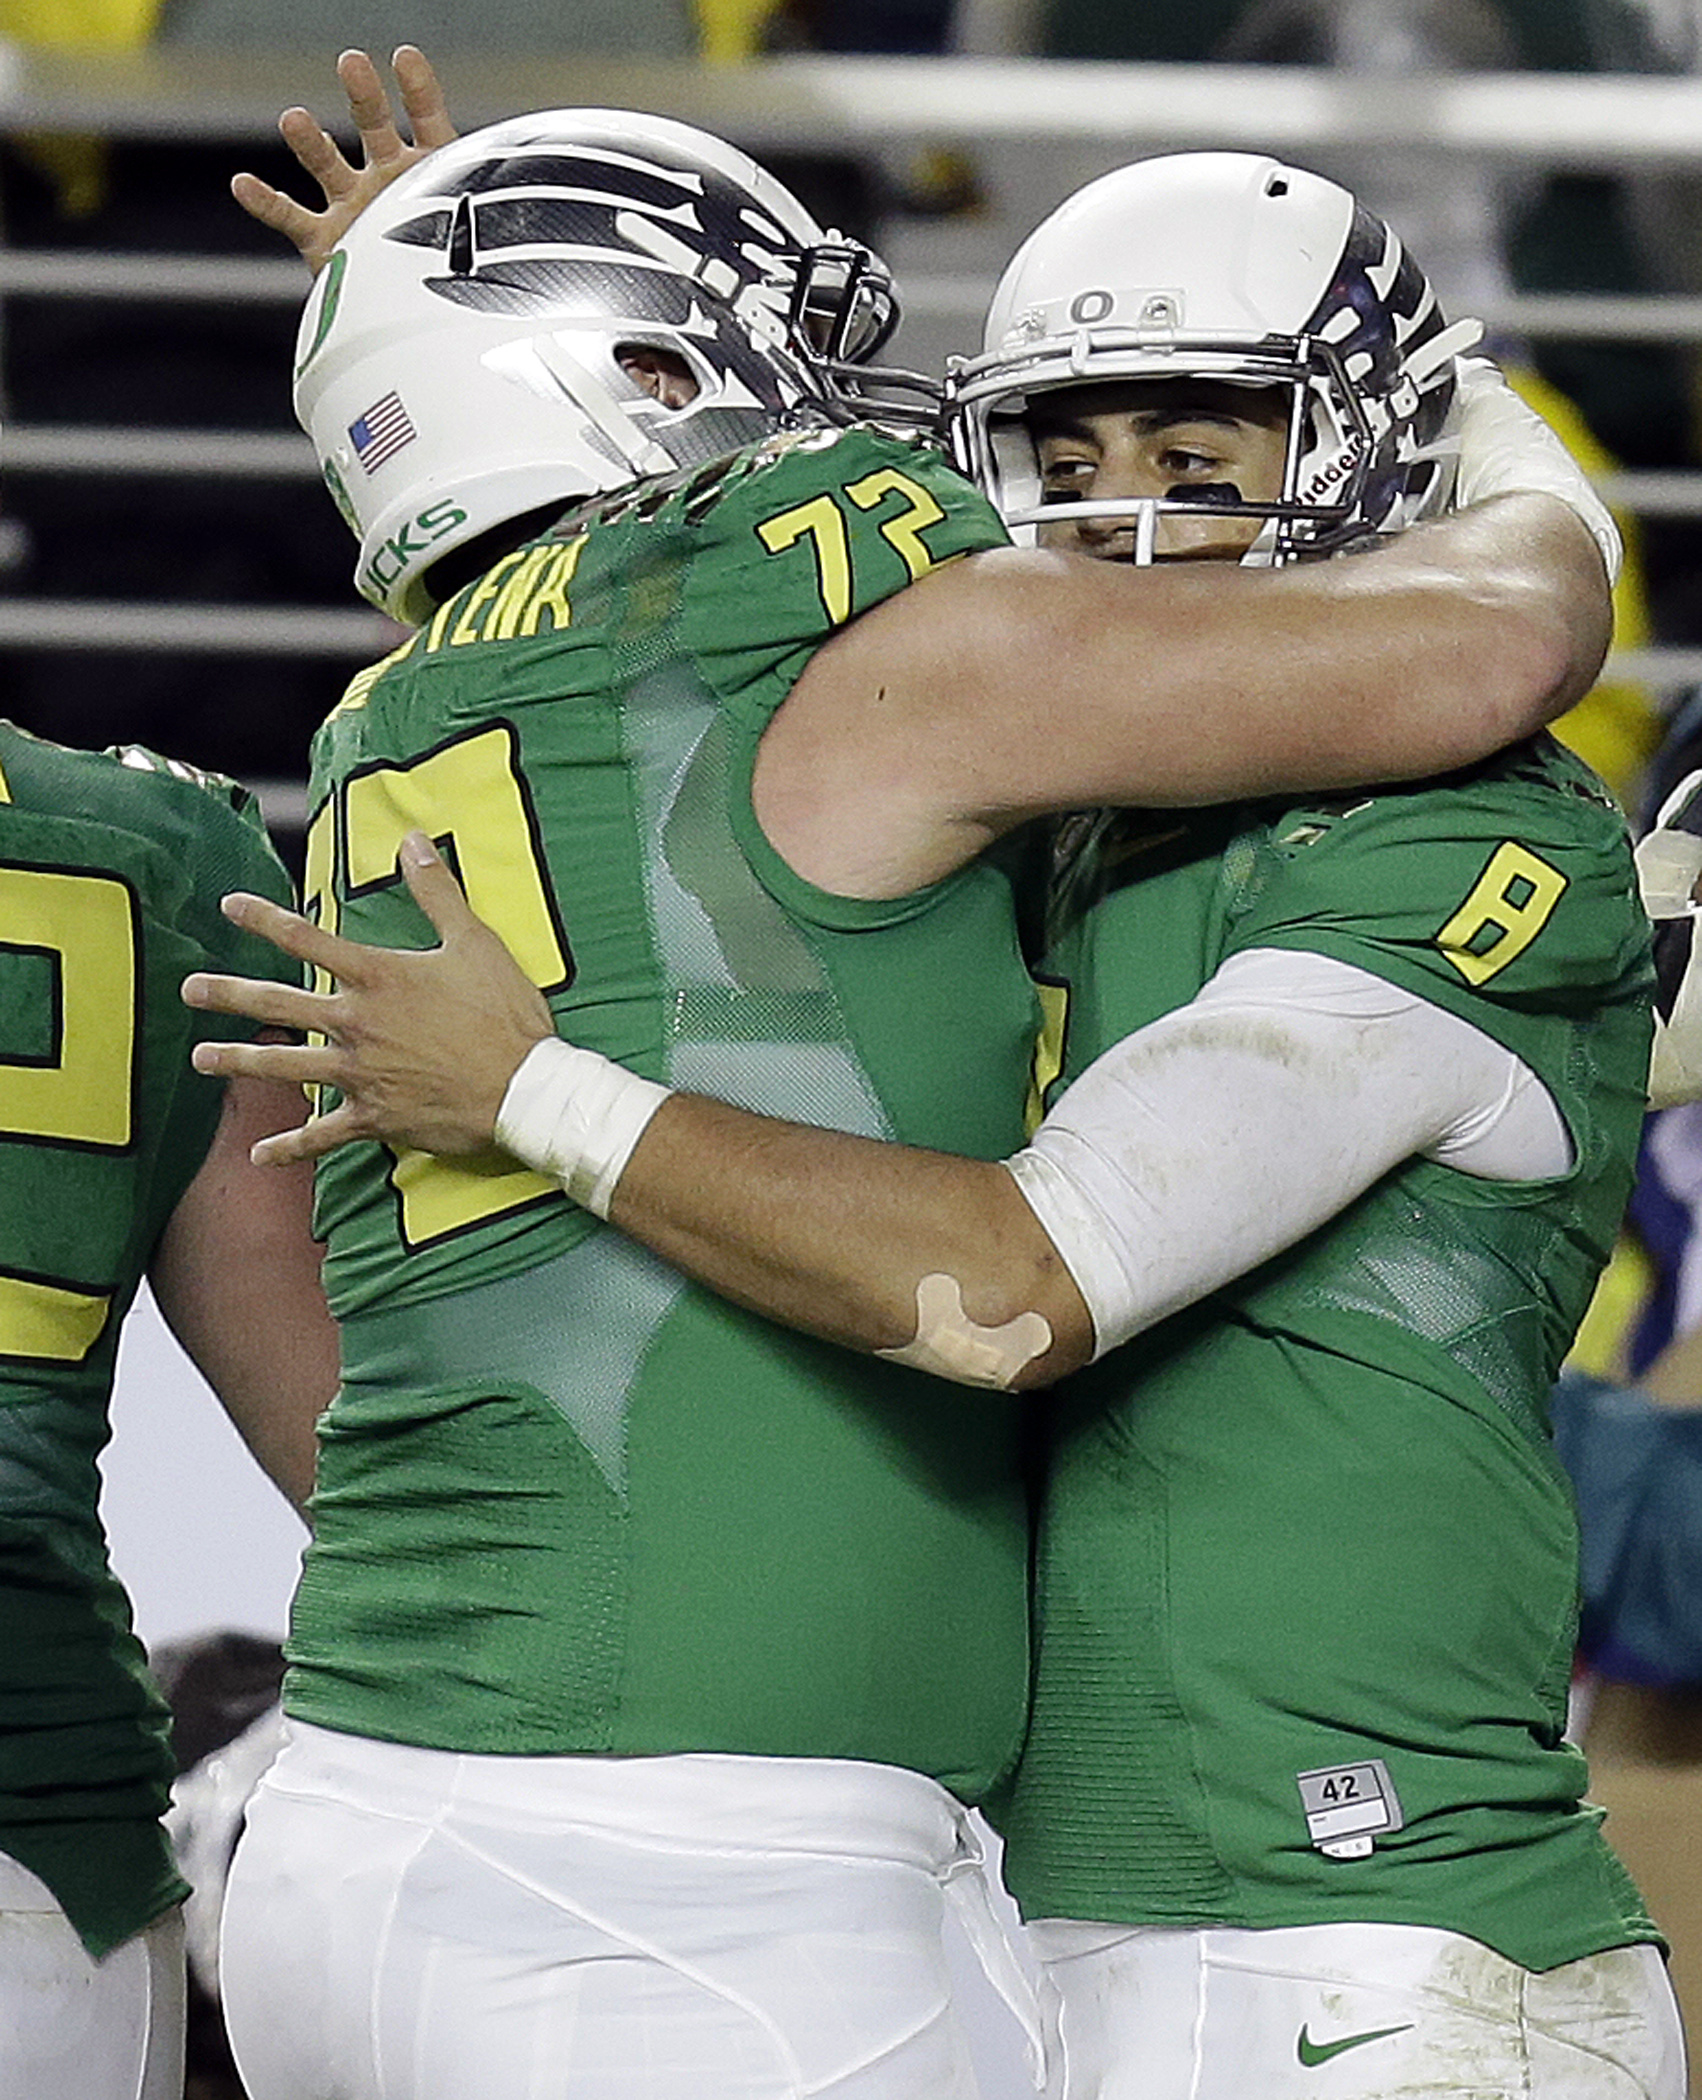 Oregon quarterback Marcus Mariota, right, is congratulated by Andre Yruretagoyena (72) after Mariota scored a touchdown against Arizona during the Pac-12 Conference championship. (AP Photo/Ben Margot)